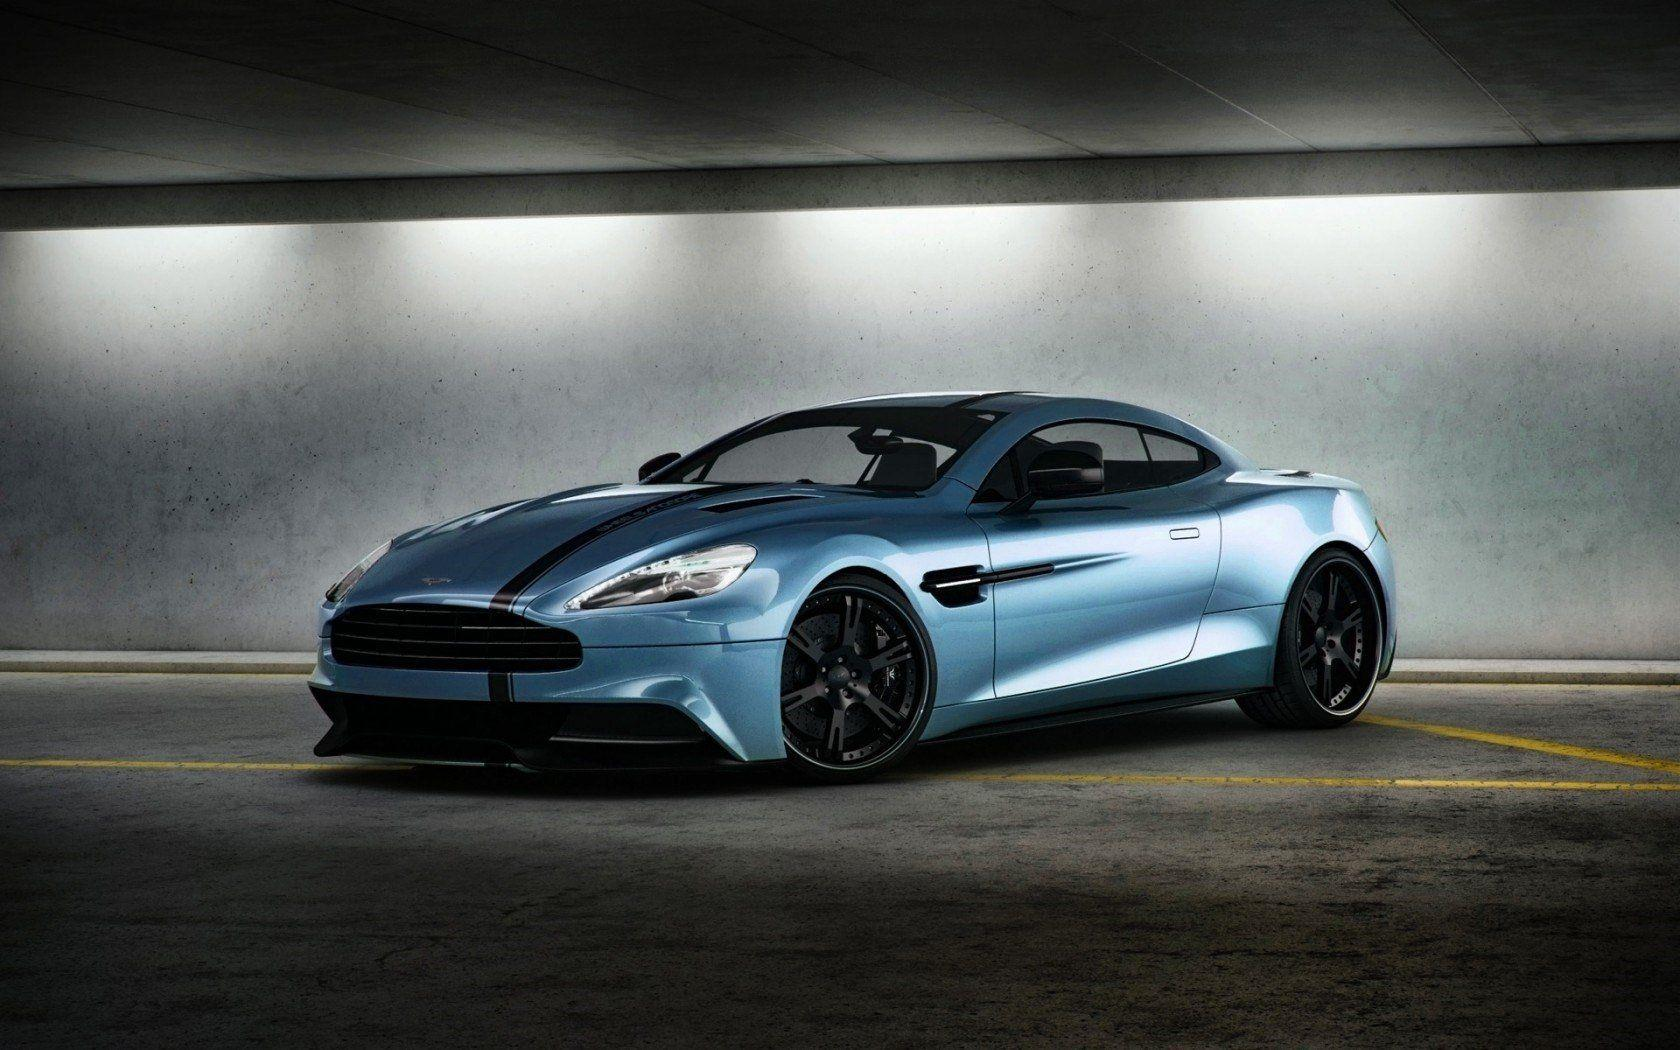 20 Aston Martin Vanquish Wallpapers in High